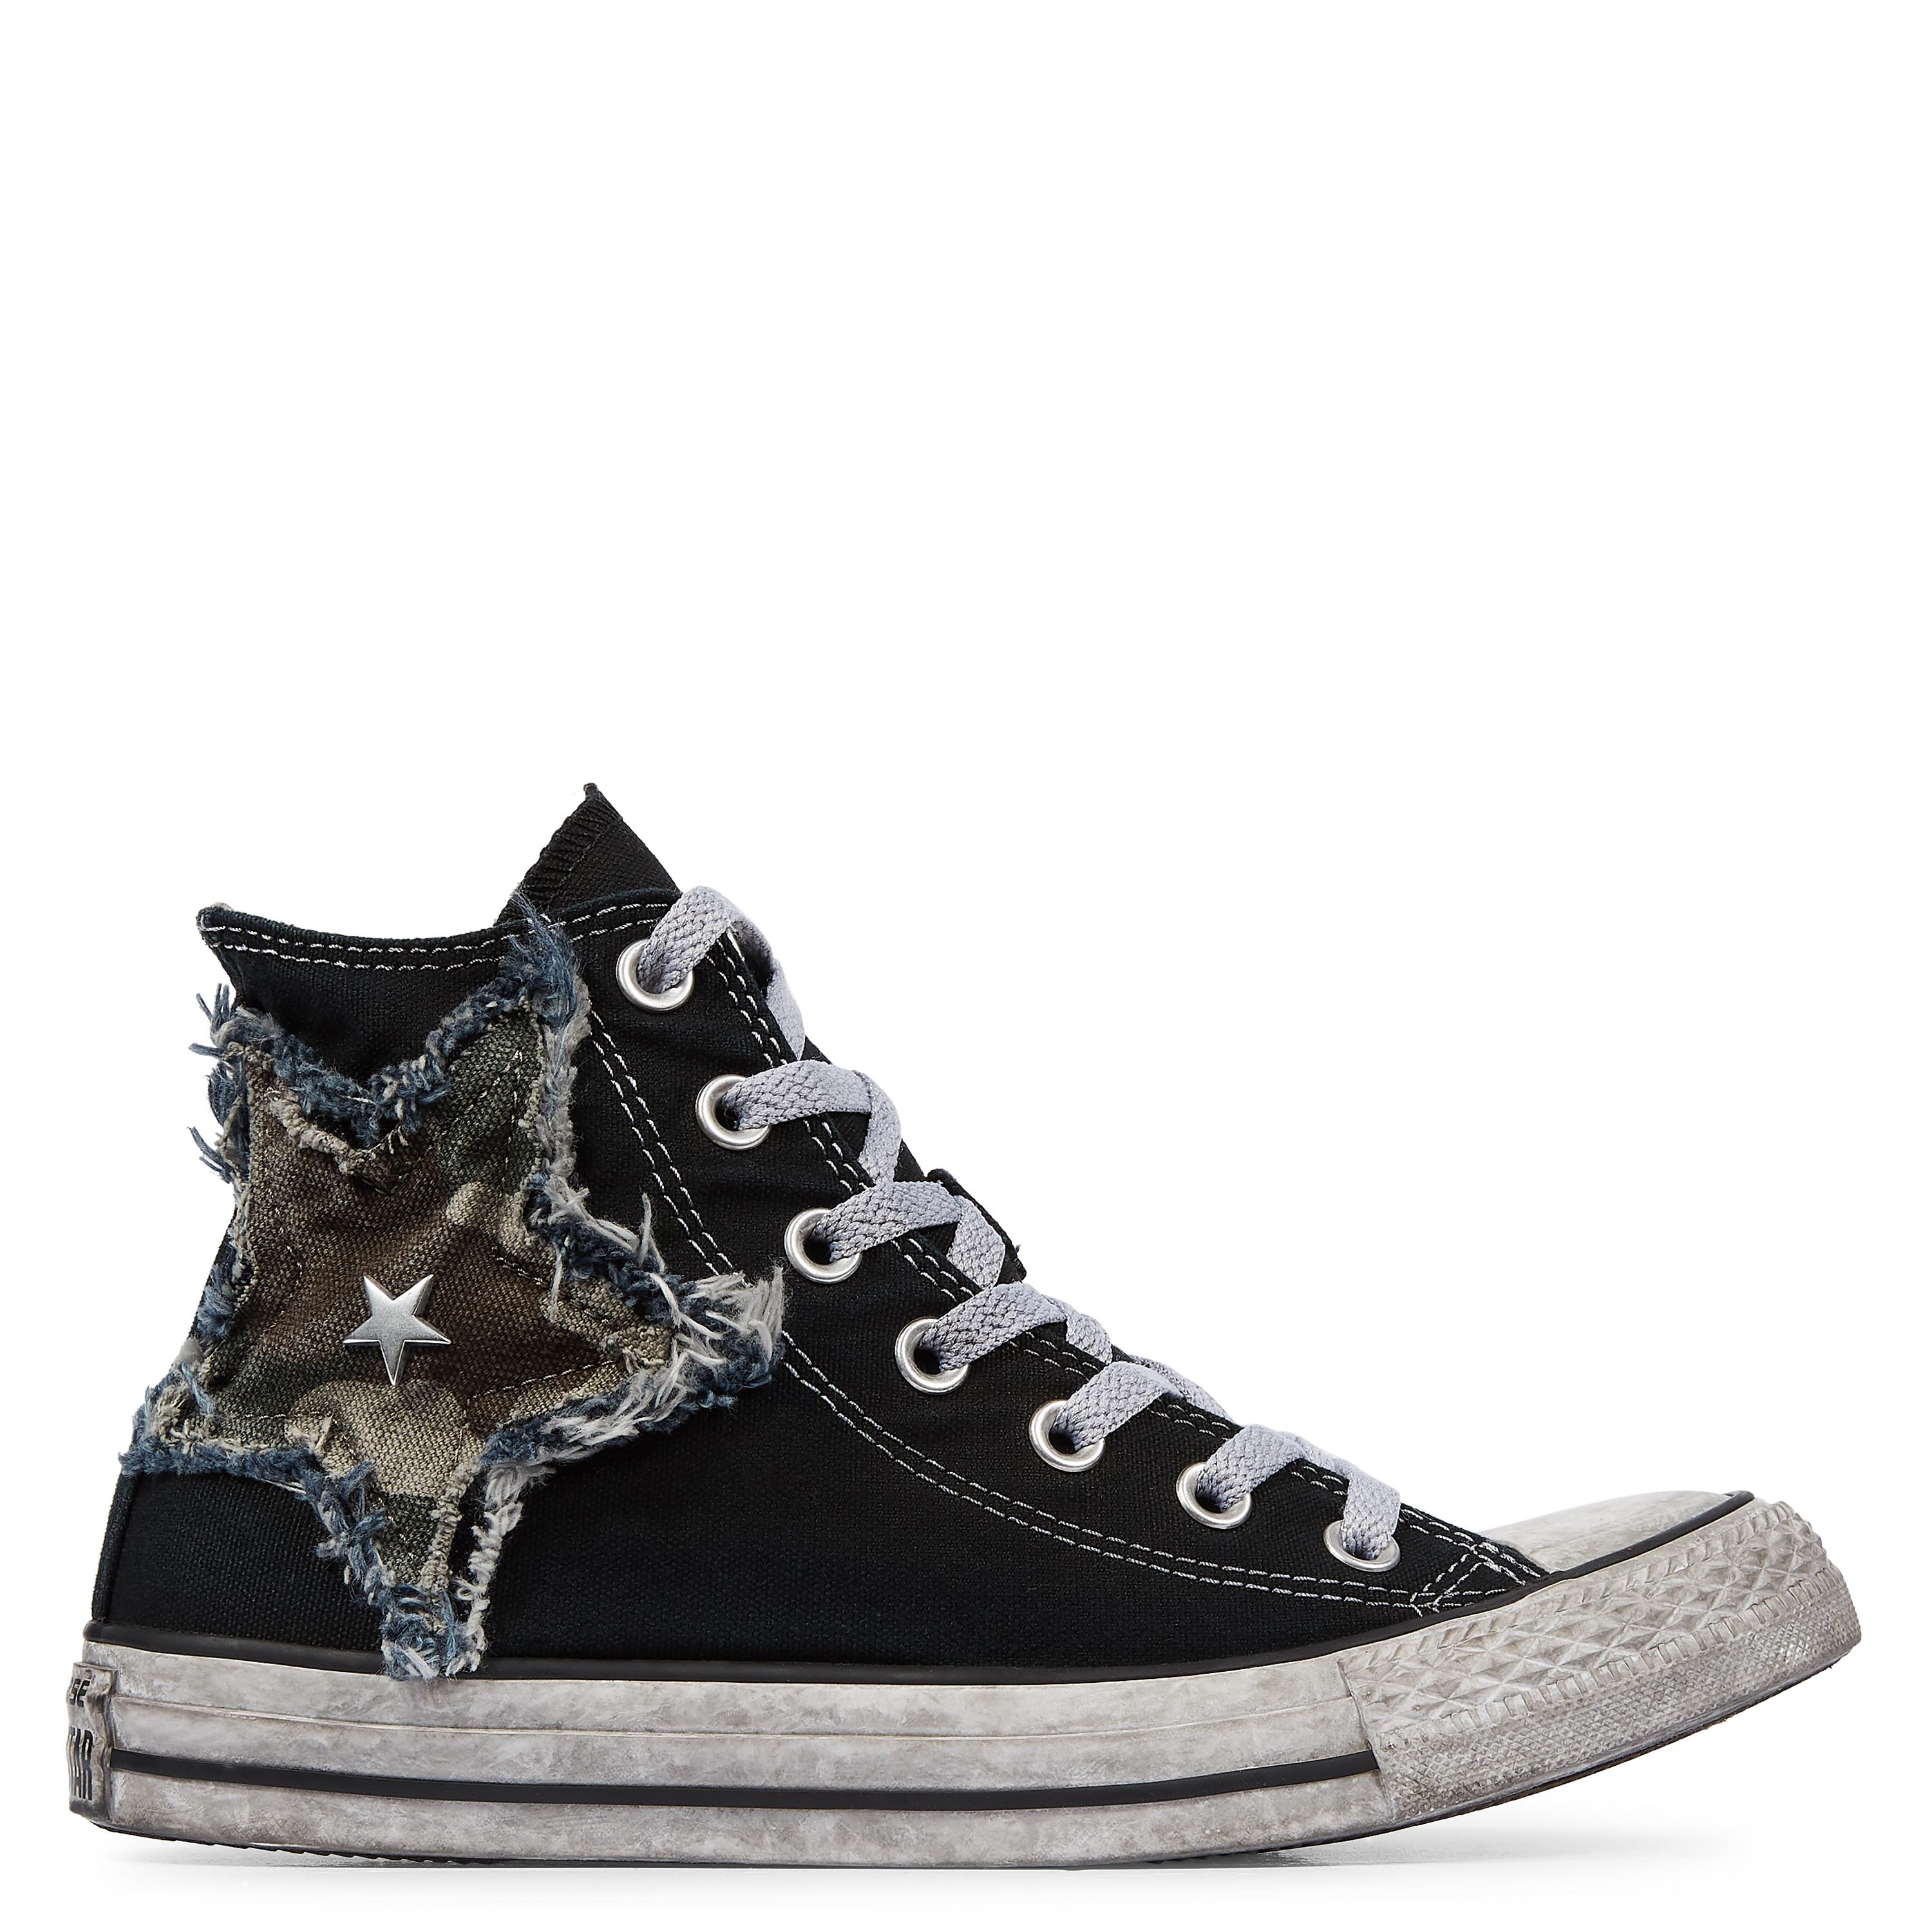 3c9c3cf2ebf61a Converse Chuck Taylor All Star Vintage Camo Star High Top in Black ...